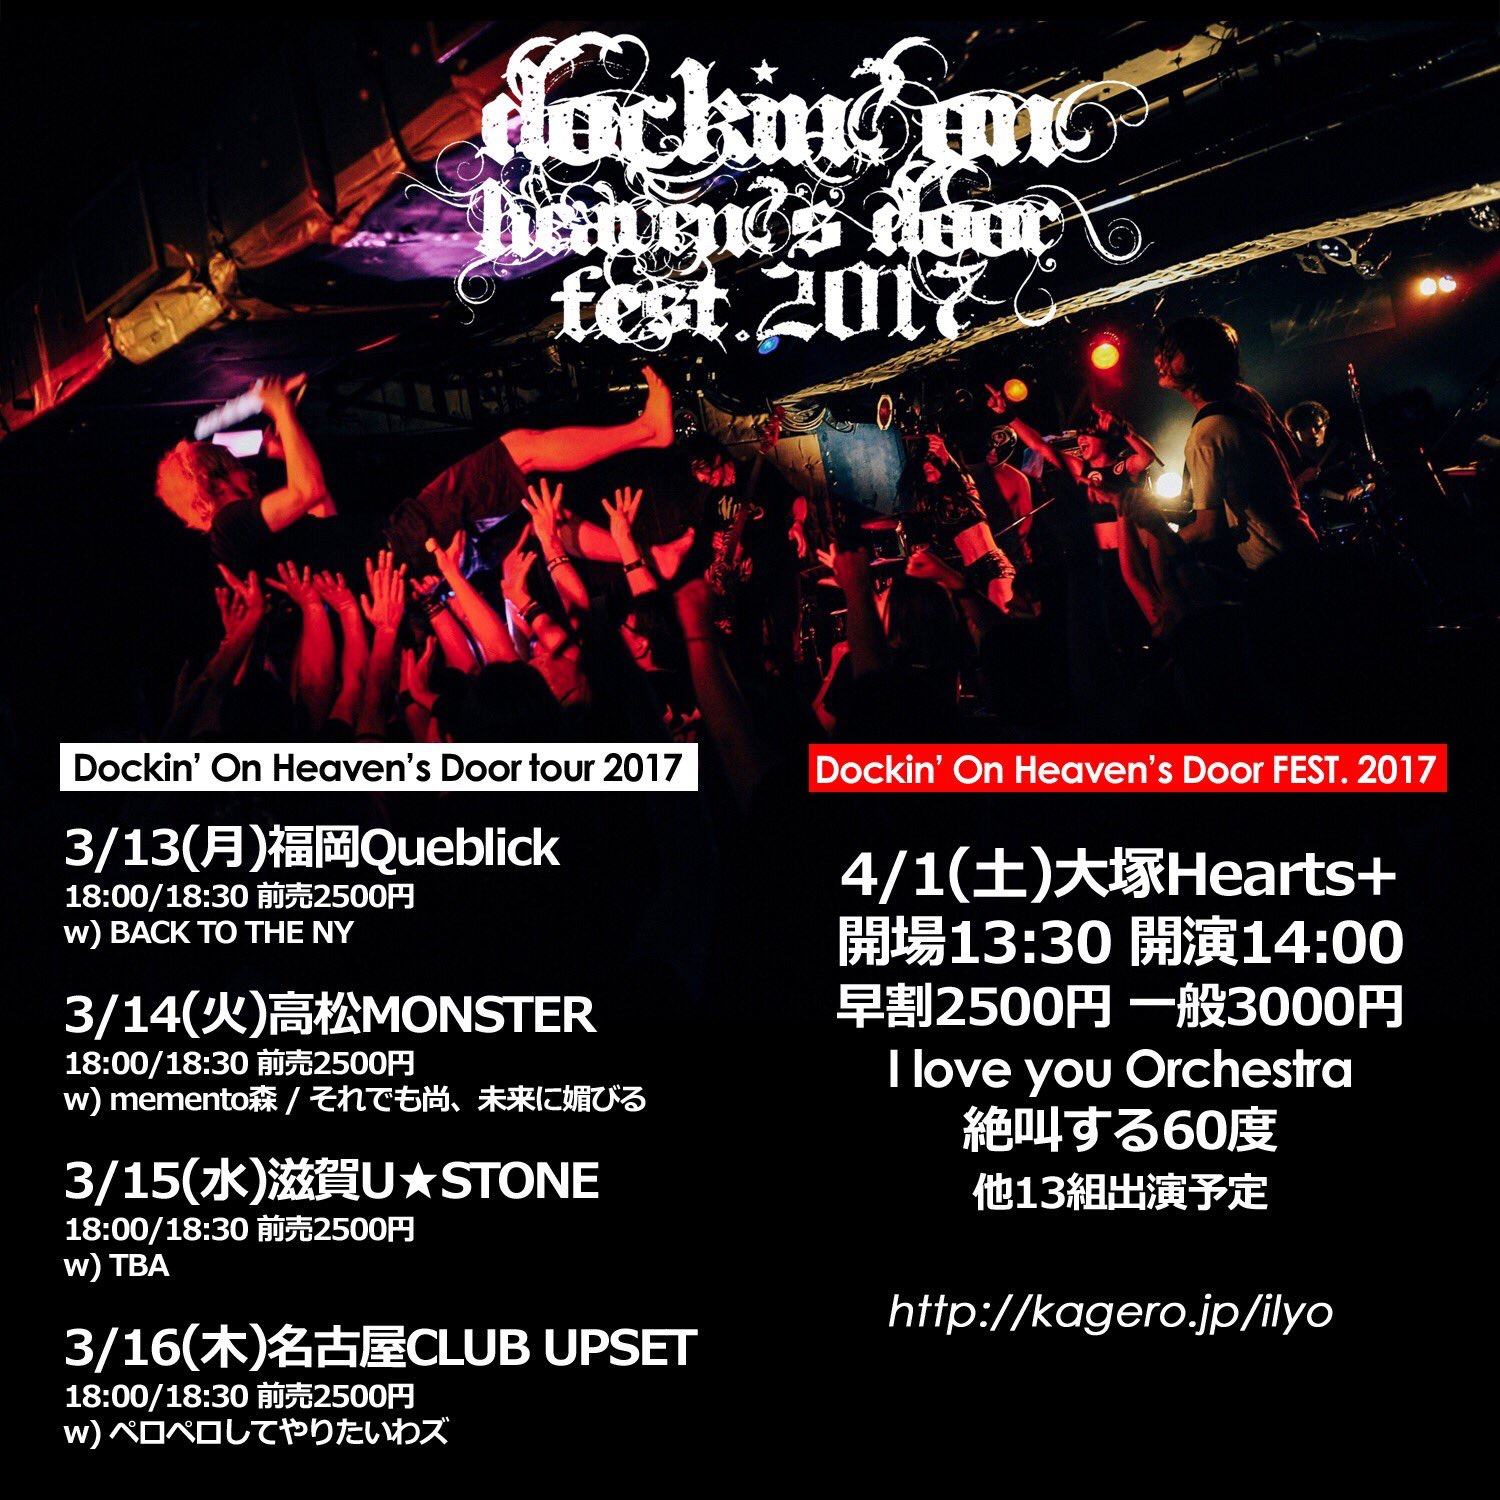 I love you Orchestra×絶叫する60度「Dockin'On Heaven's Door tour2017 一巡目~香川~」